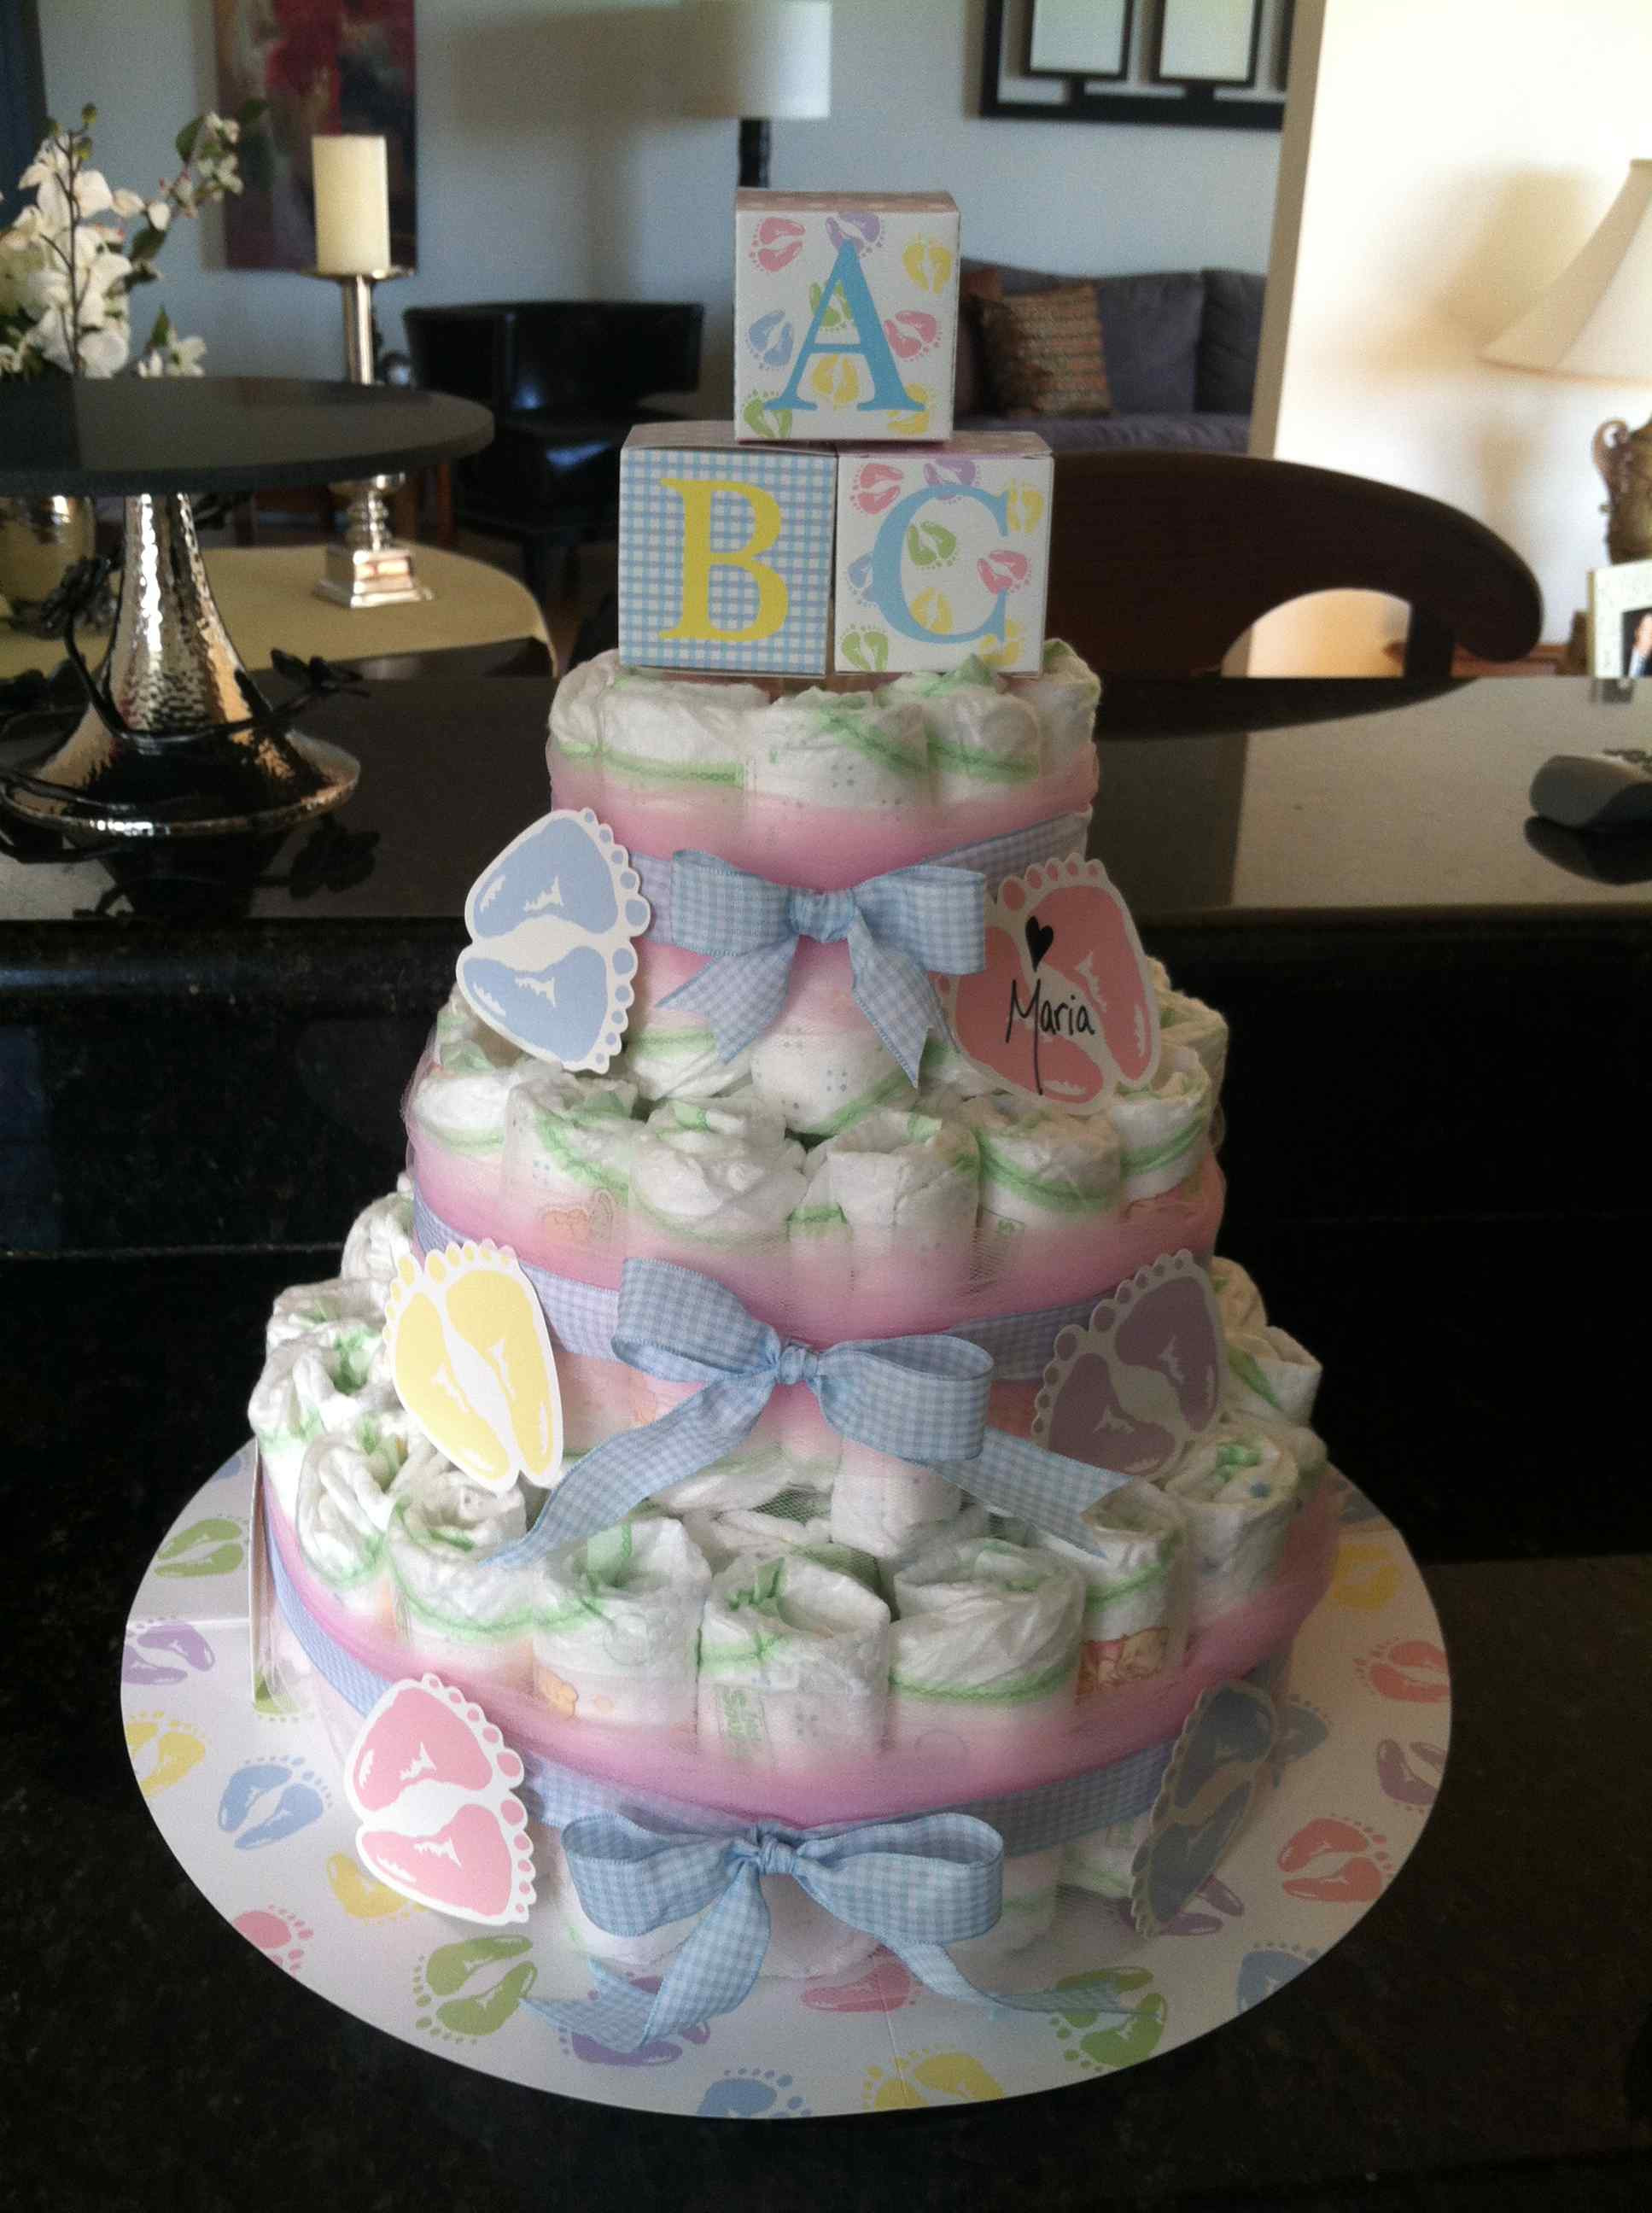 Baby Shower Diaper Cakes Inspirational Blue Baby Shower Diaper Cake Centerpiece Of Gorgeous 41 Ideas Baby Shower Diaper Cakes